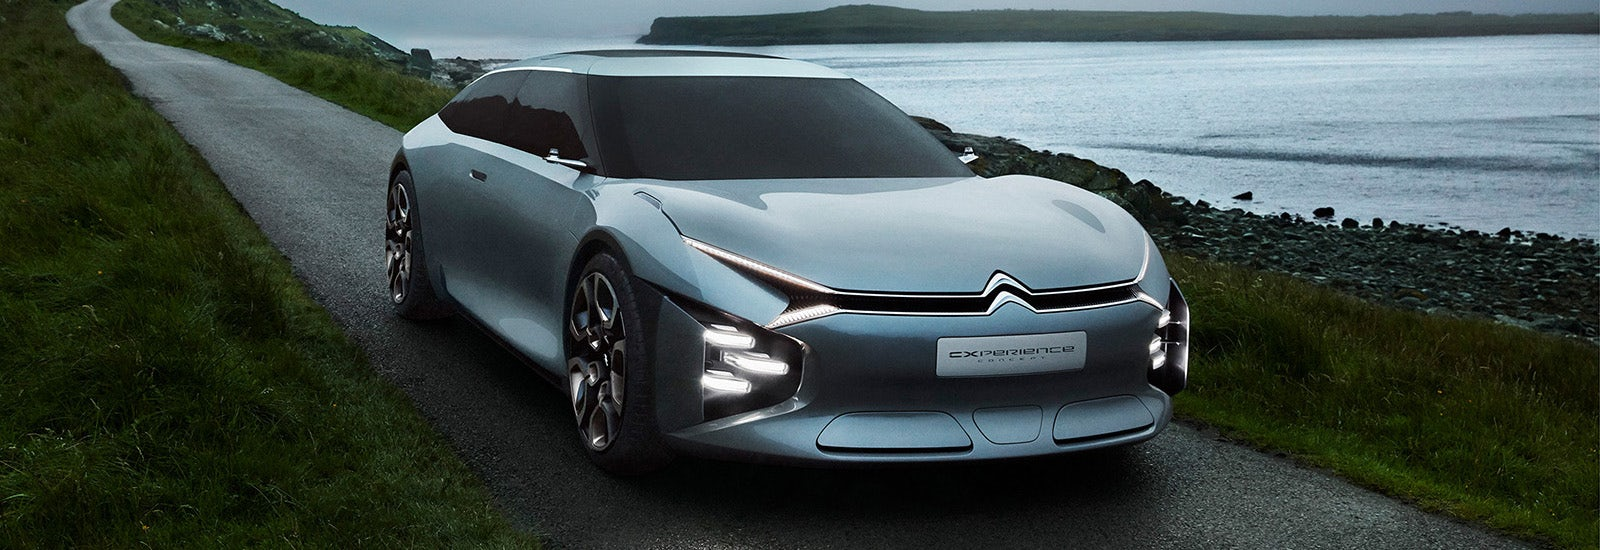 2019 citroen c6 price specs release date carwow. Black Bedroom Furniture Sets. Home Design Ideas